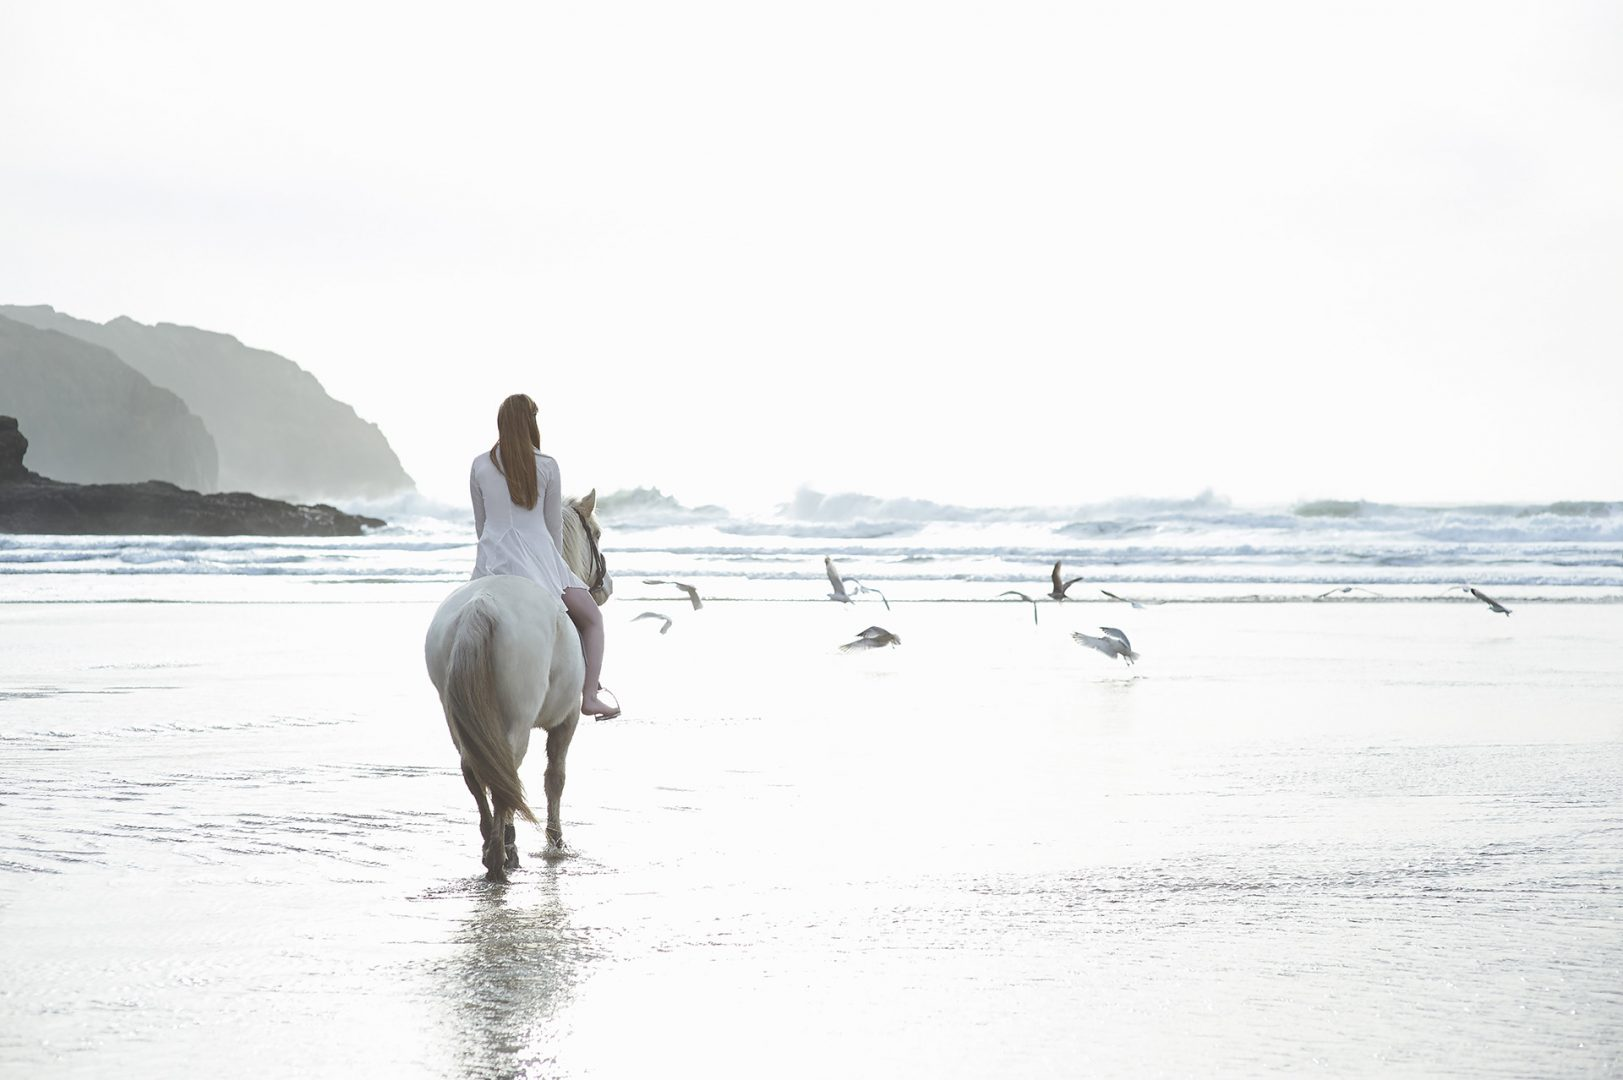 Photograph of a girl riding a horse on a Cornish beach